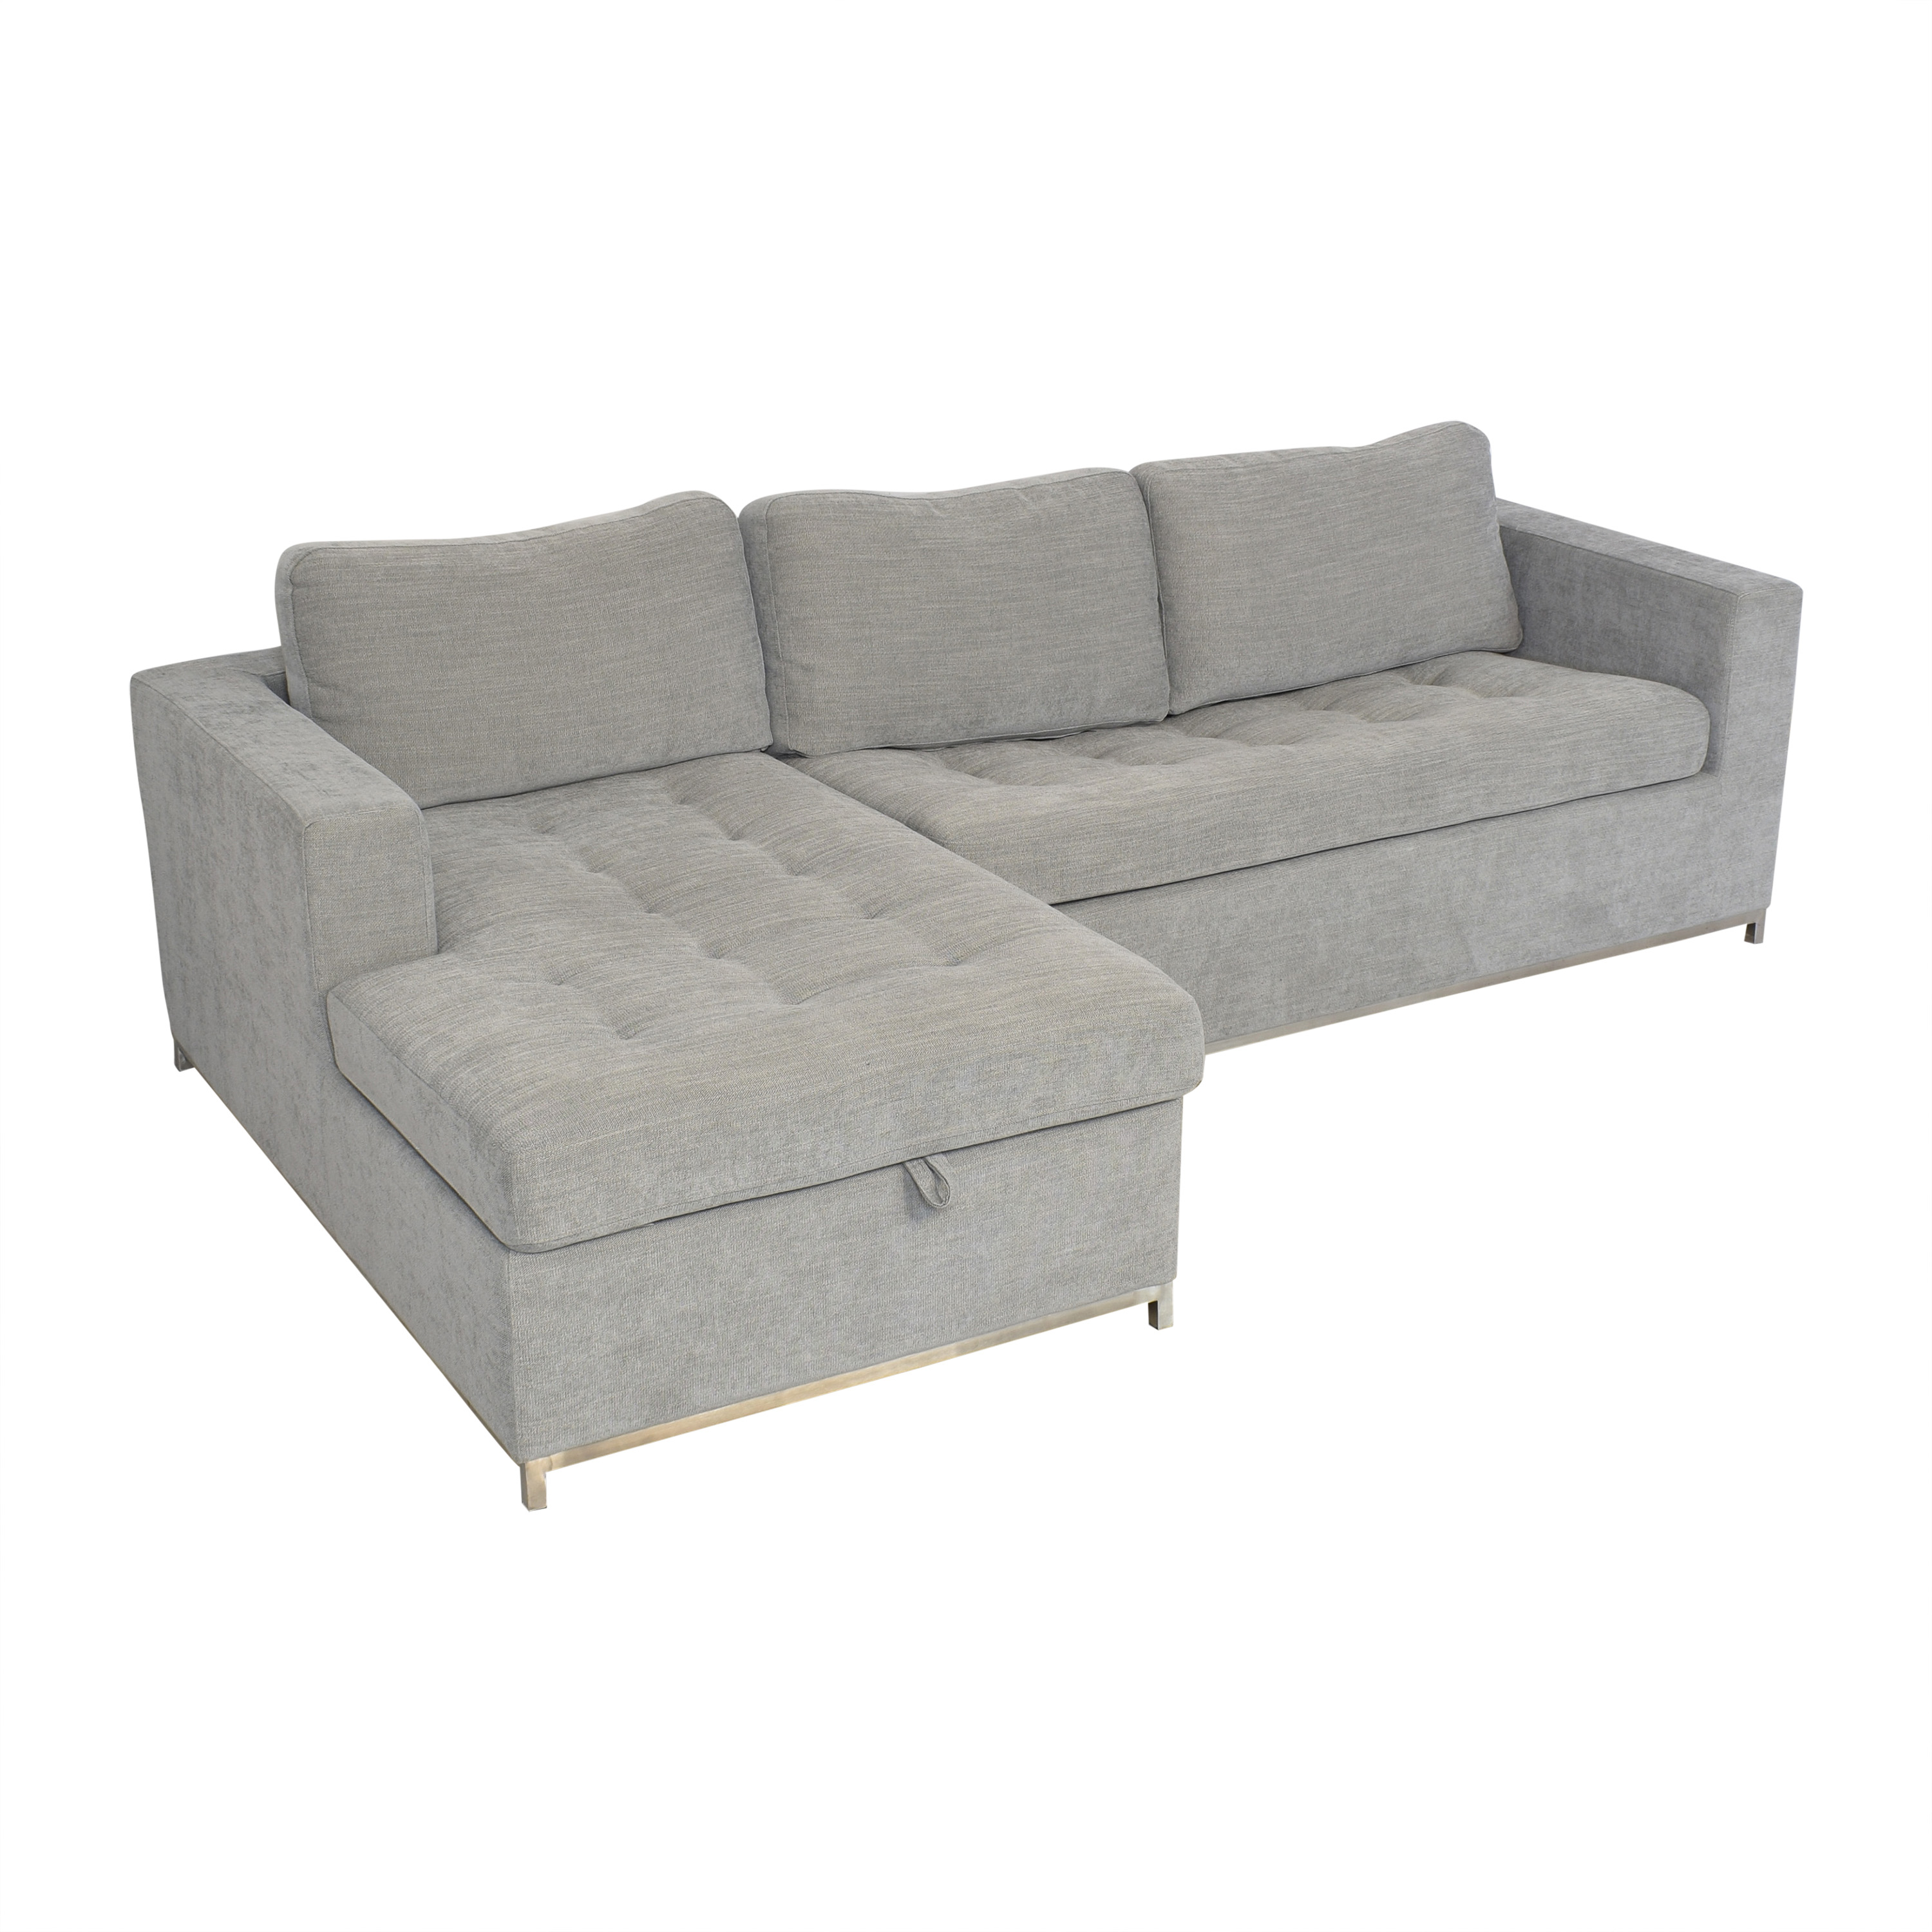 Article Article Soma Chaise Sofa Bed dimensions